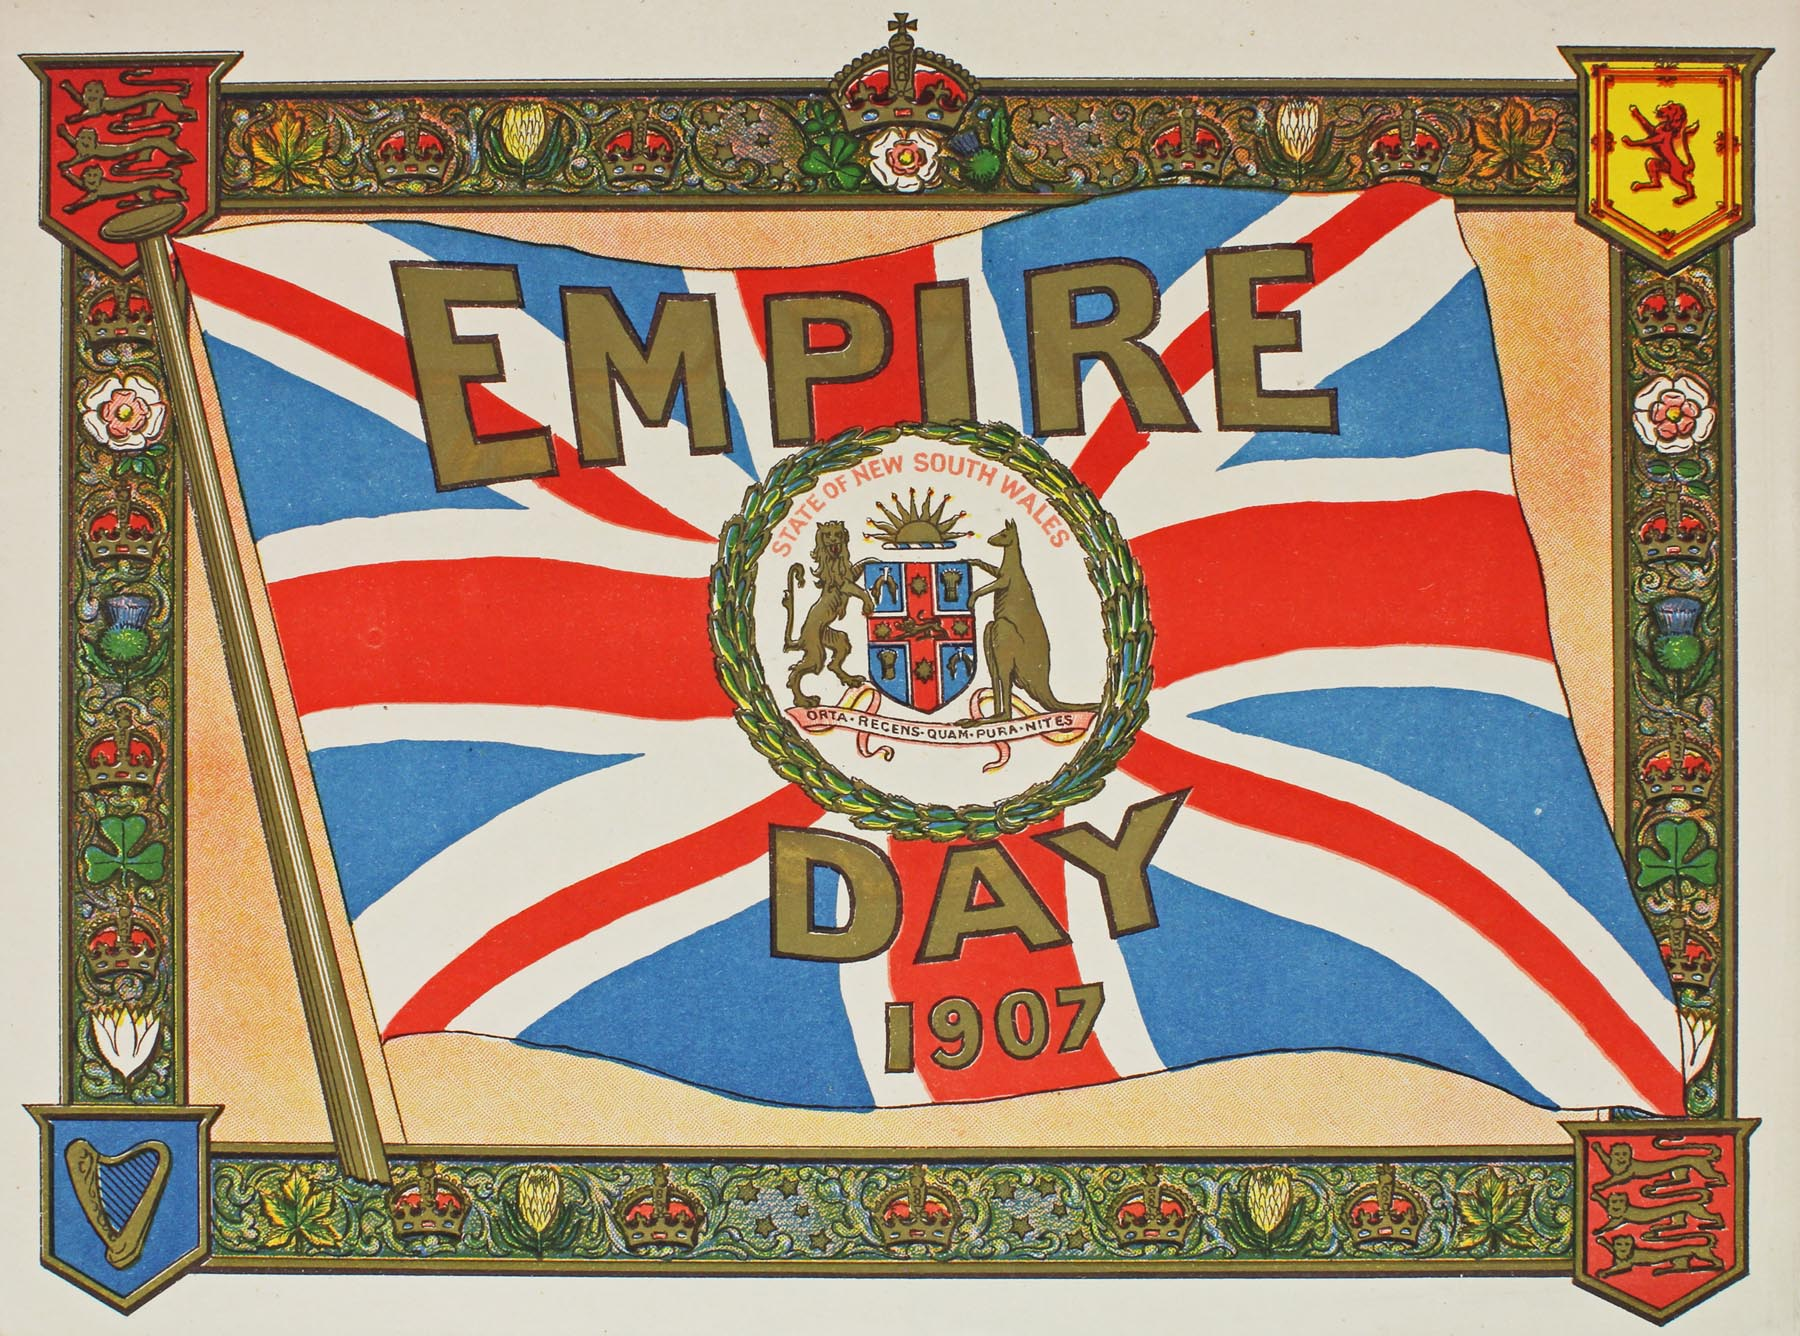 Cover of Empire Day Program, 1907. From the unregistered papers and pamphlets in Premier's Department NRS 12172, [4/6251]